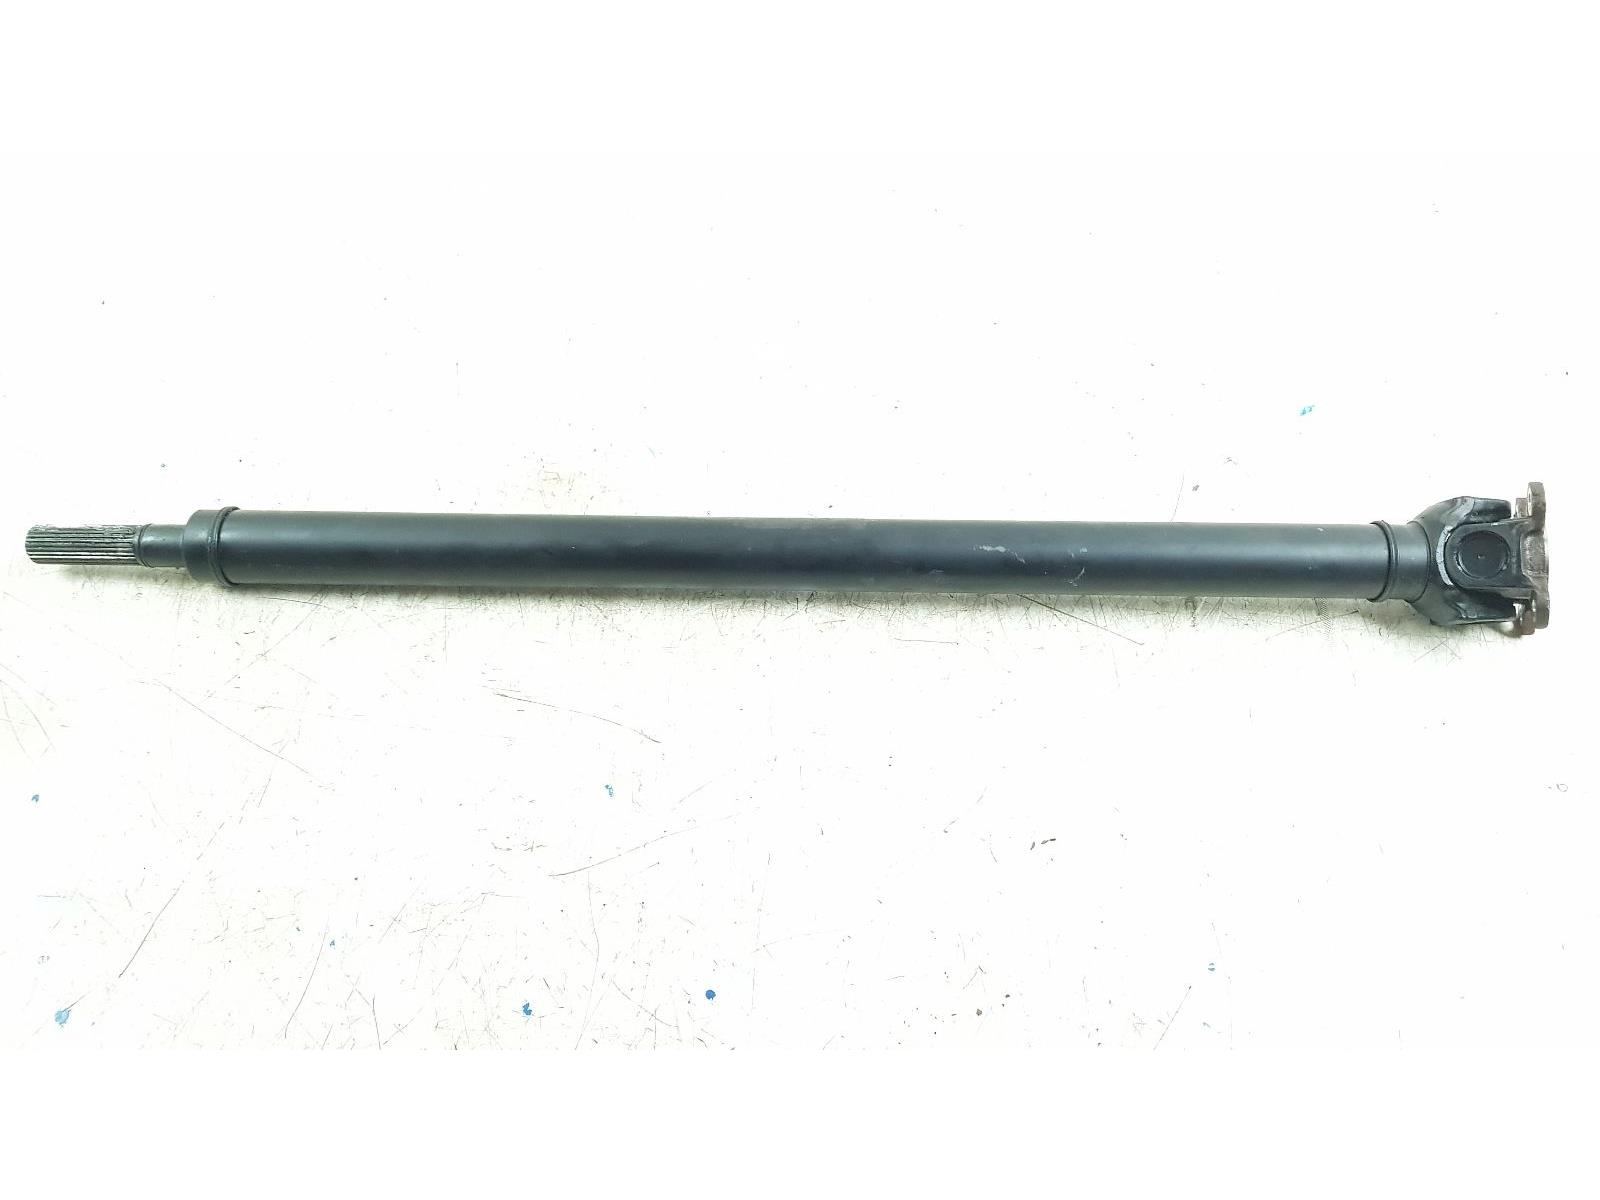 2016-2020 G30 BMW 5 SERIES 540I XDRIVE FRONT SECTION PROPSHAFT 3.0 PETROL